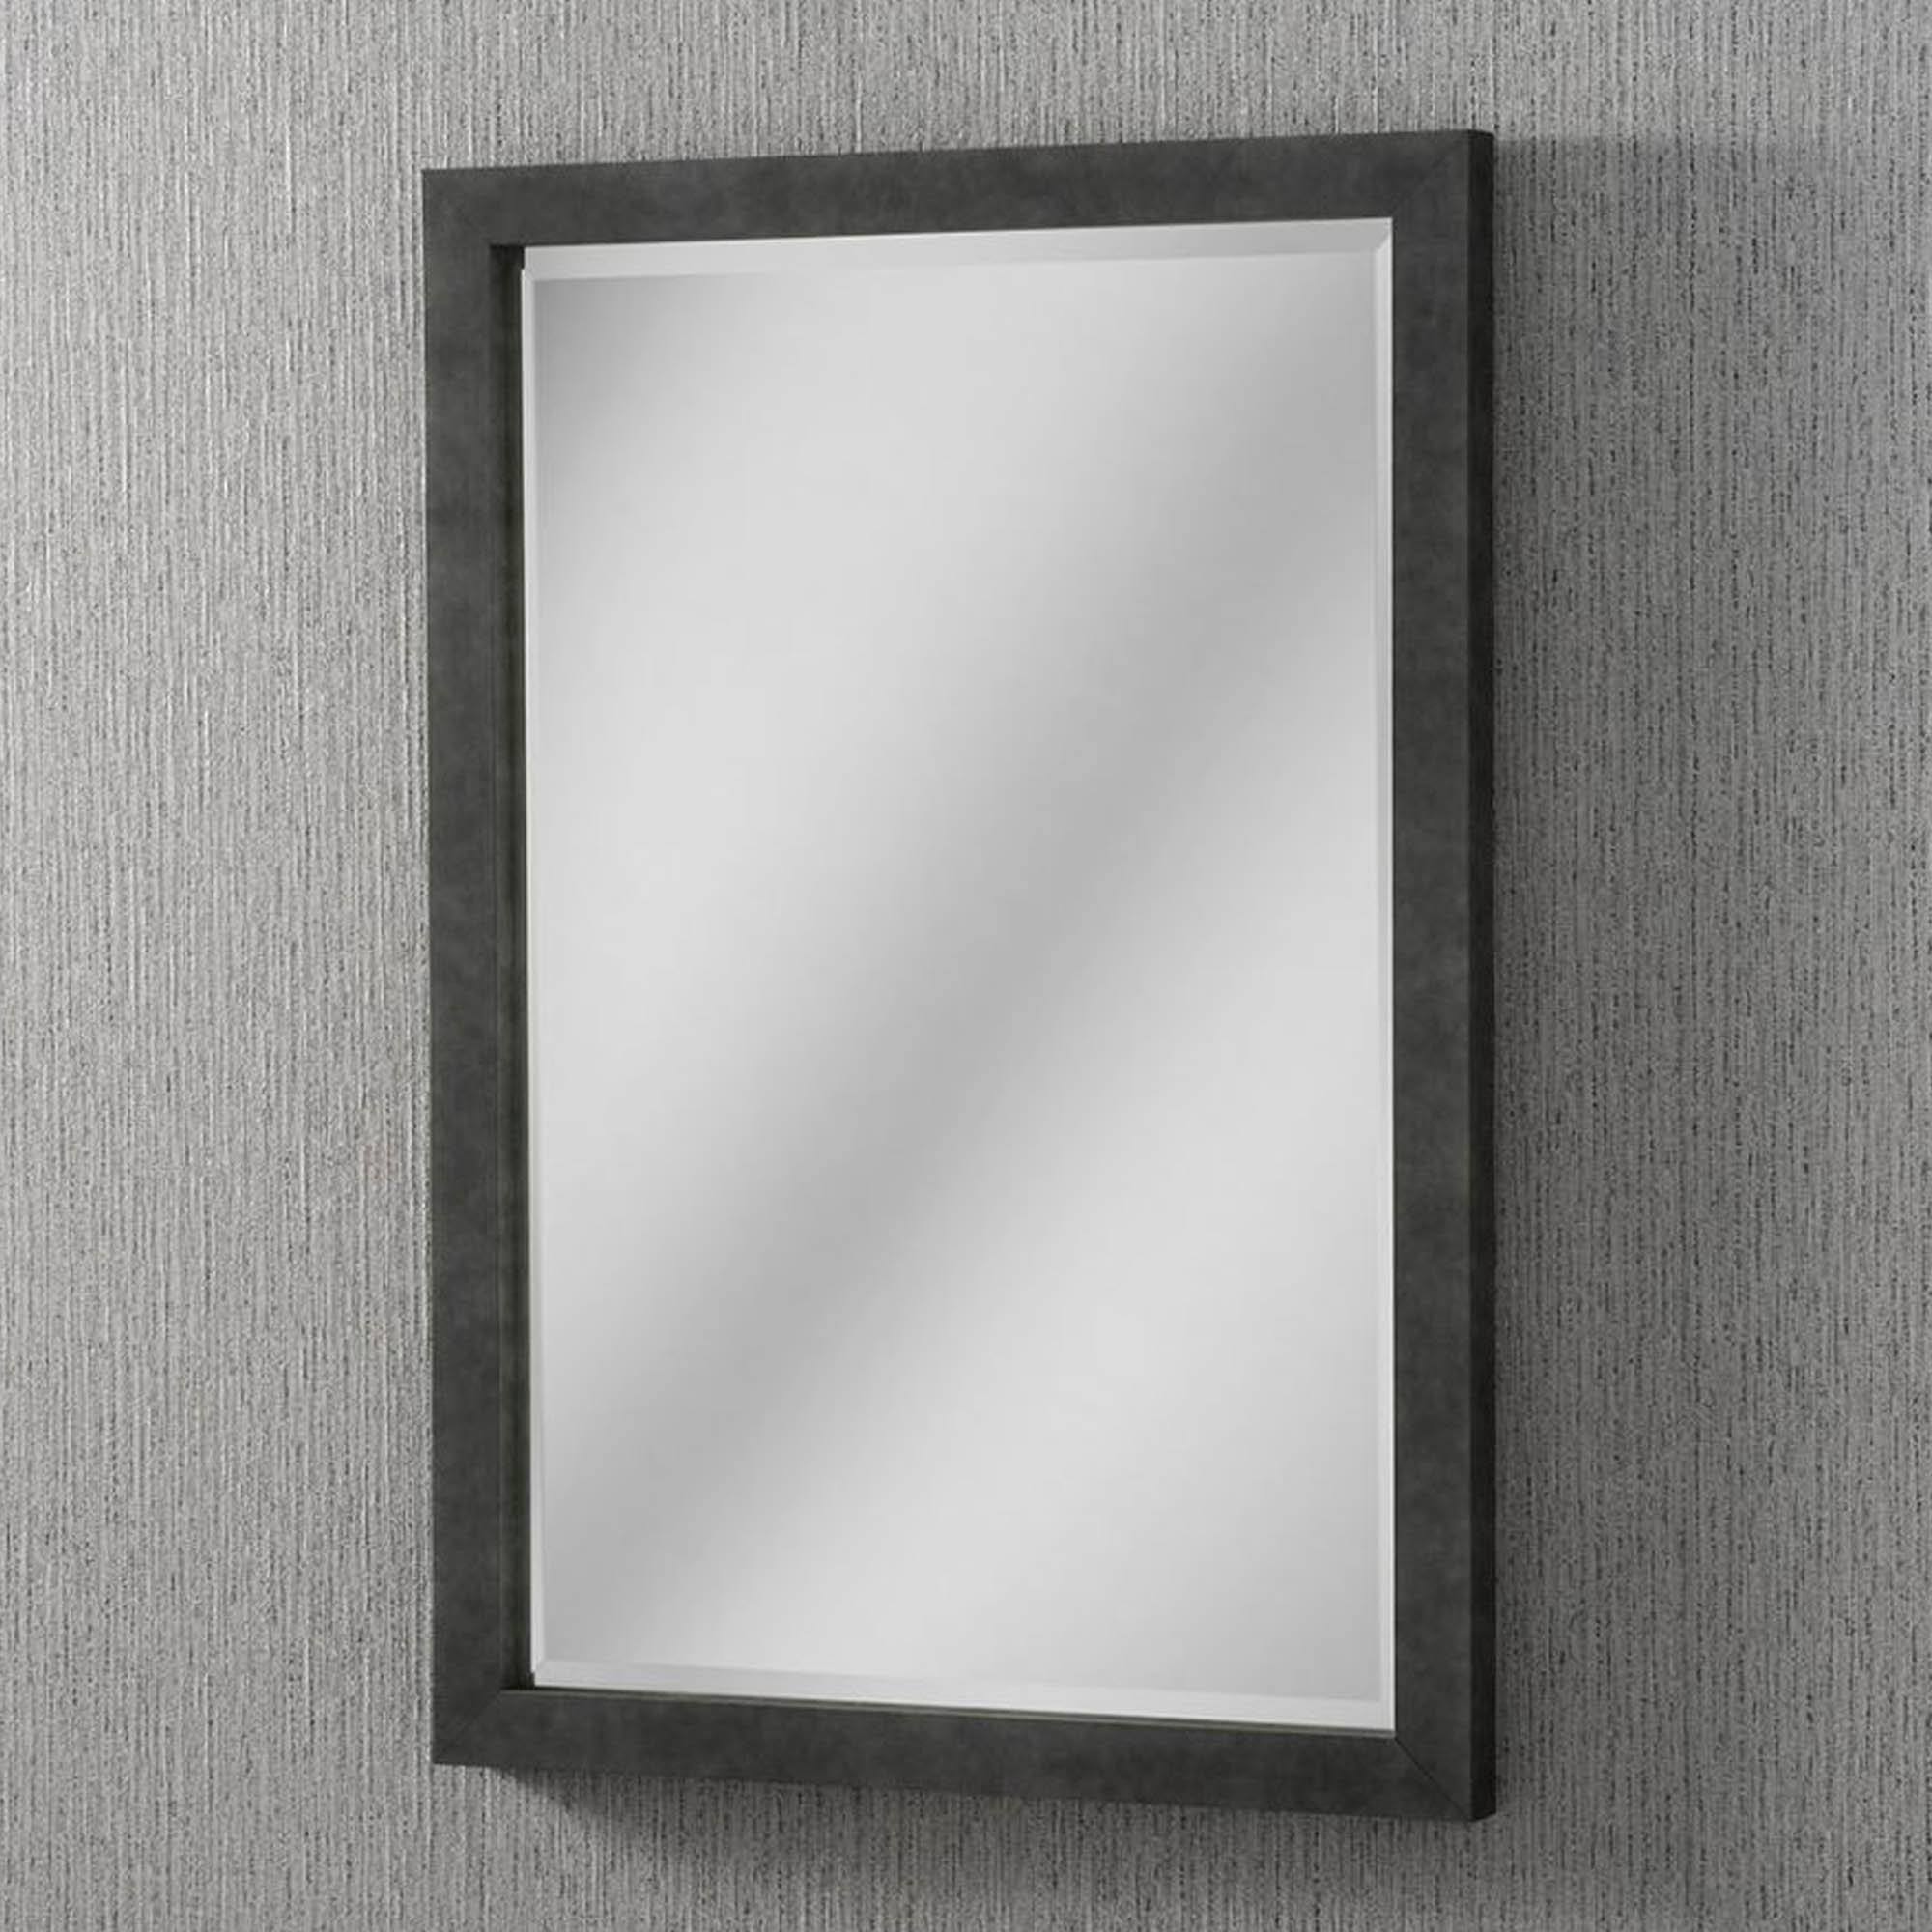 Trendy Dark Concrete Rectangular Wall Mirror In Black Wall Mirrors (View 9 of 20)